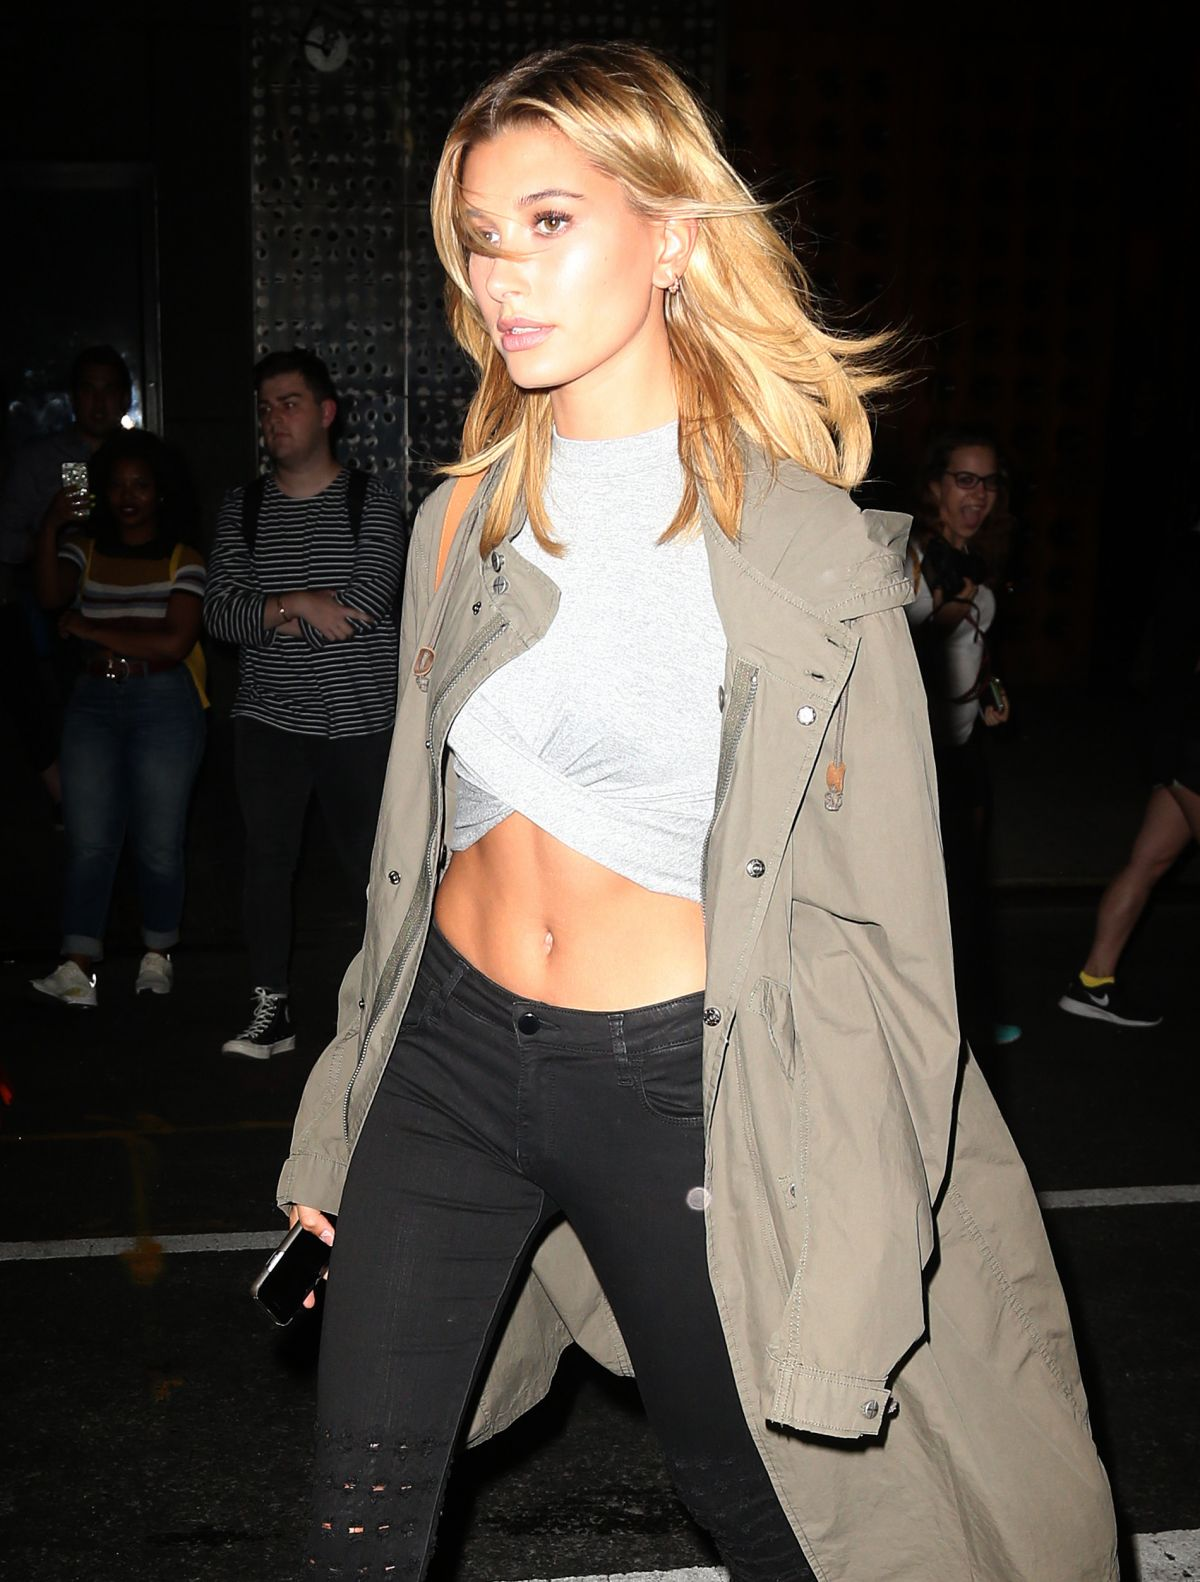 HAILEY BALDWIN Night Out in New York 08/23/2016